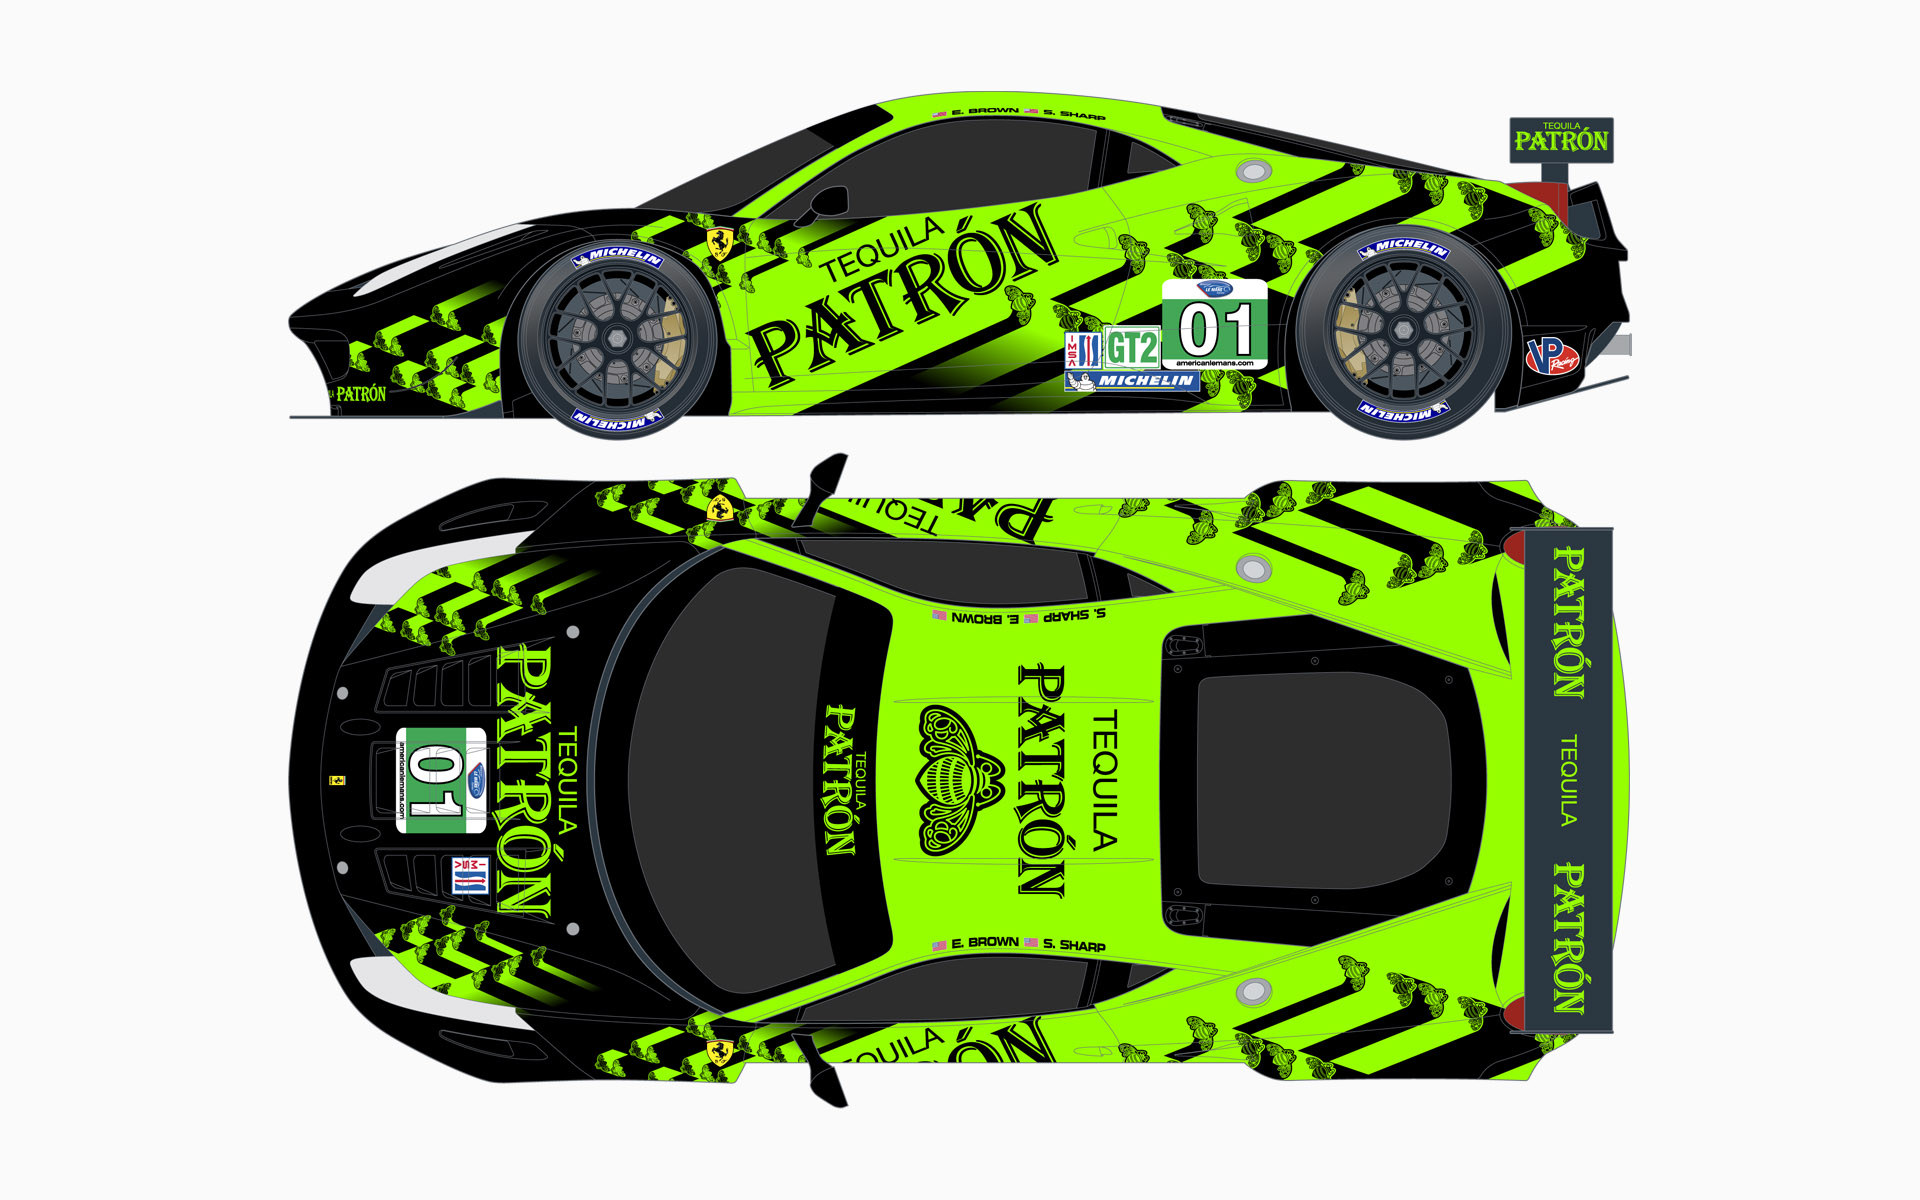 2011 Extreme Speed Motorsports Pátron Ferrari 458 GT Livery Elevations